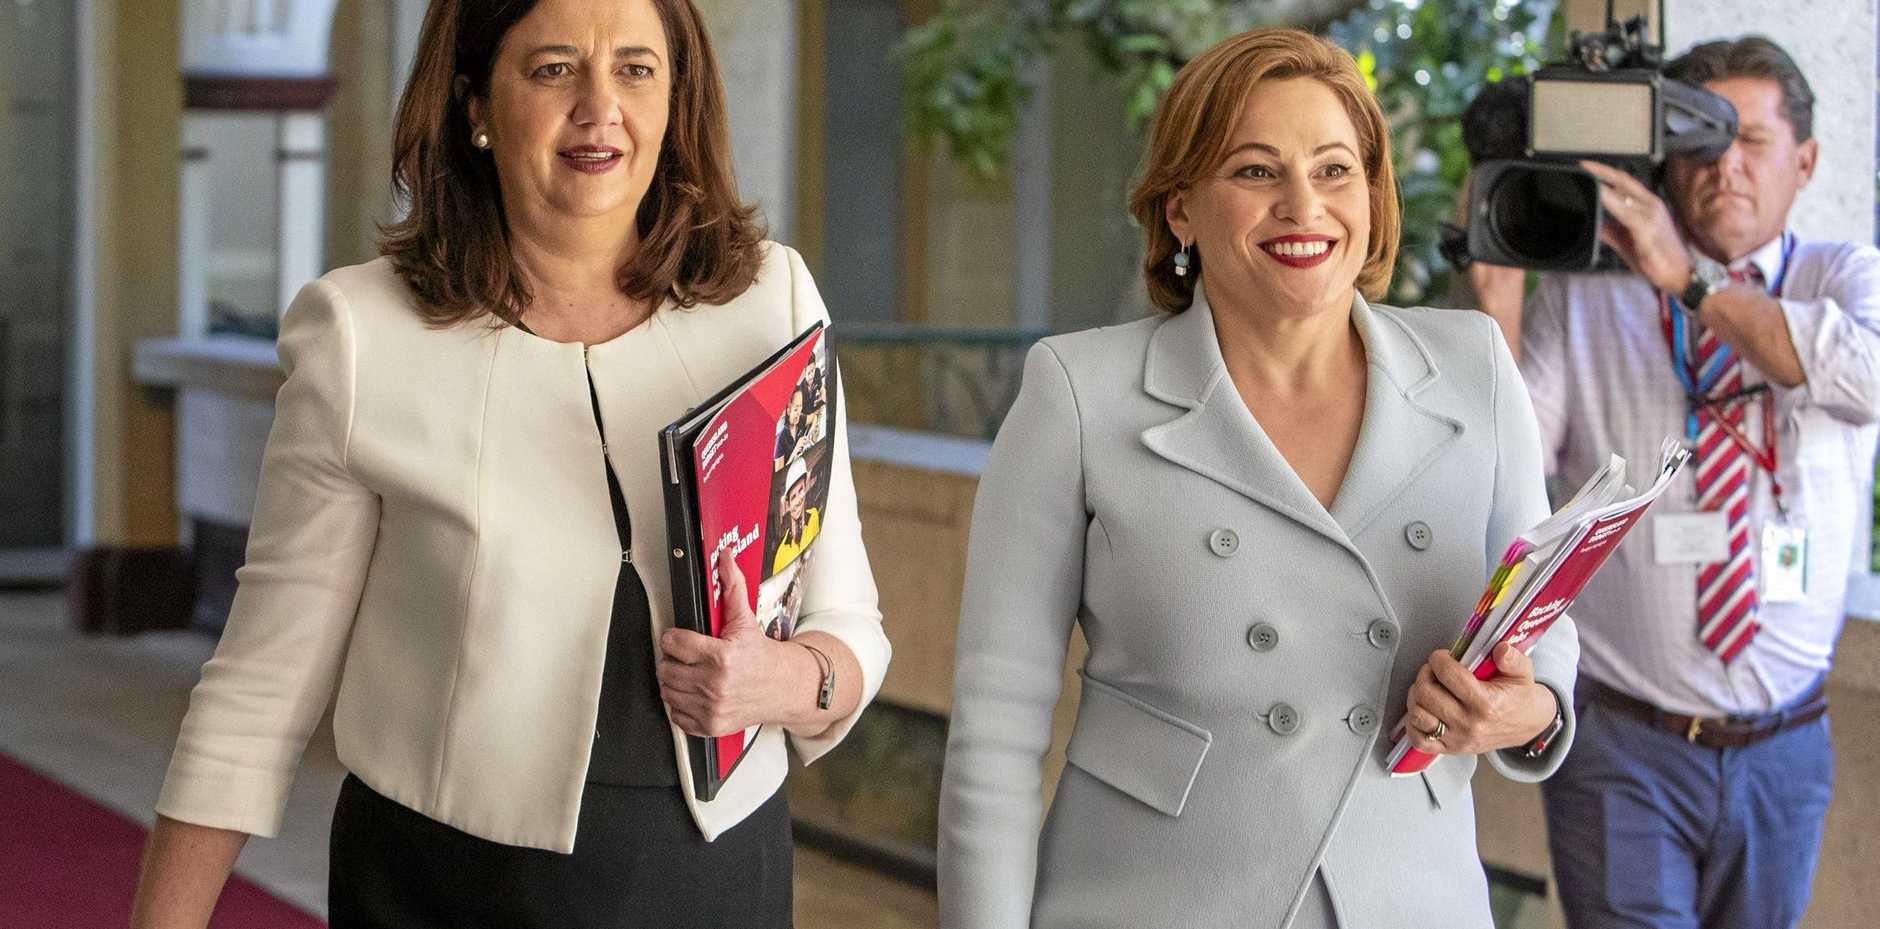 Queensland Premier Annastacia Palaszczuk and Treasurer Jackie Trad (right) walk towards a press briefing to deliver the state government's 2019-20 Queensland budget to journalists at Parliament House in Brisbane, Tuesday, June 11, 2019.(AAP Image/Glenn Hunt) NO ARCHIVING